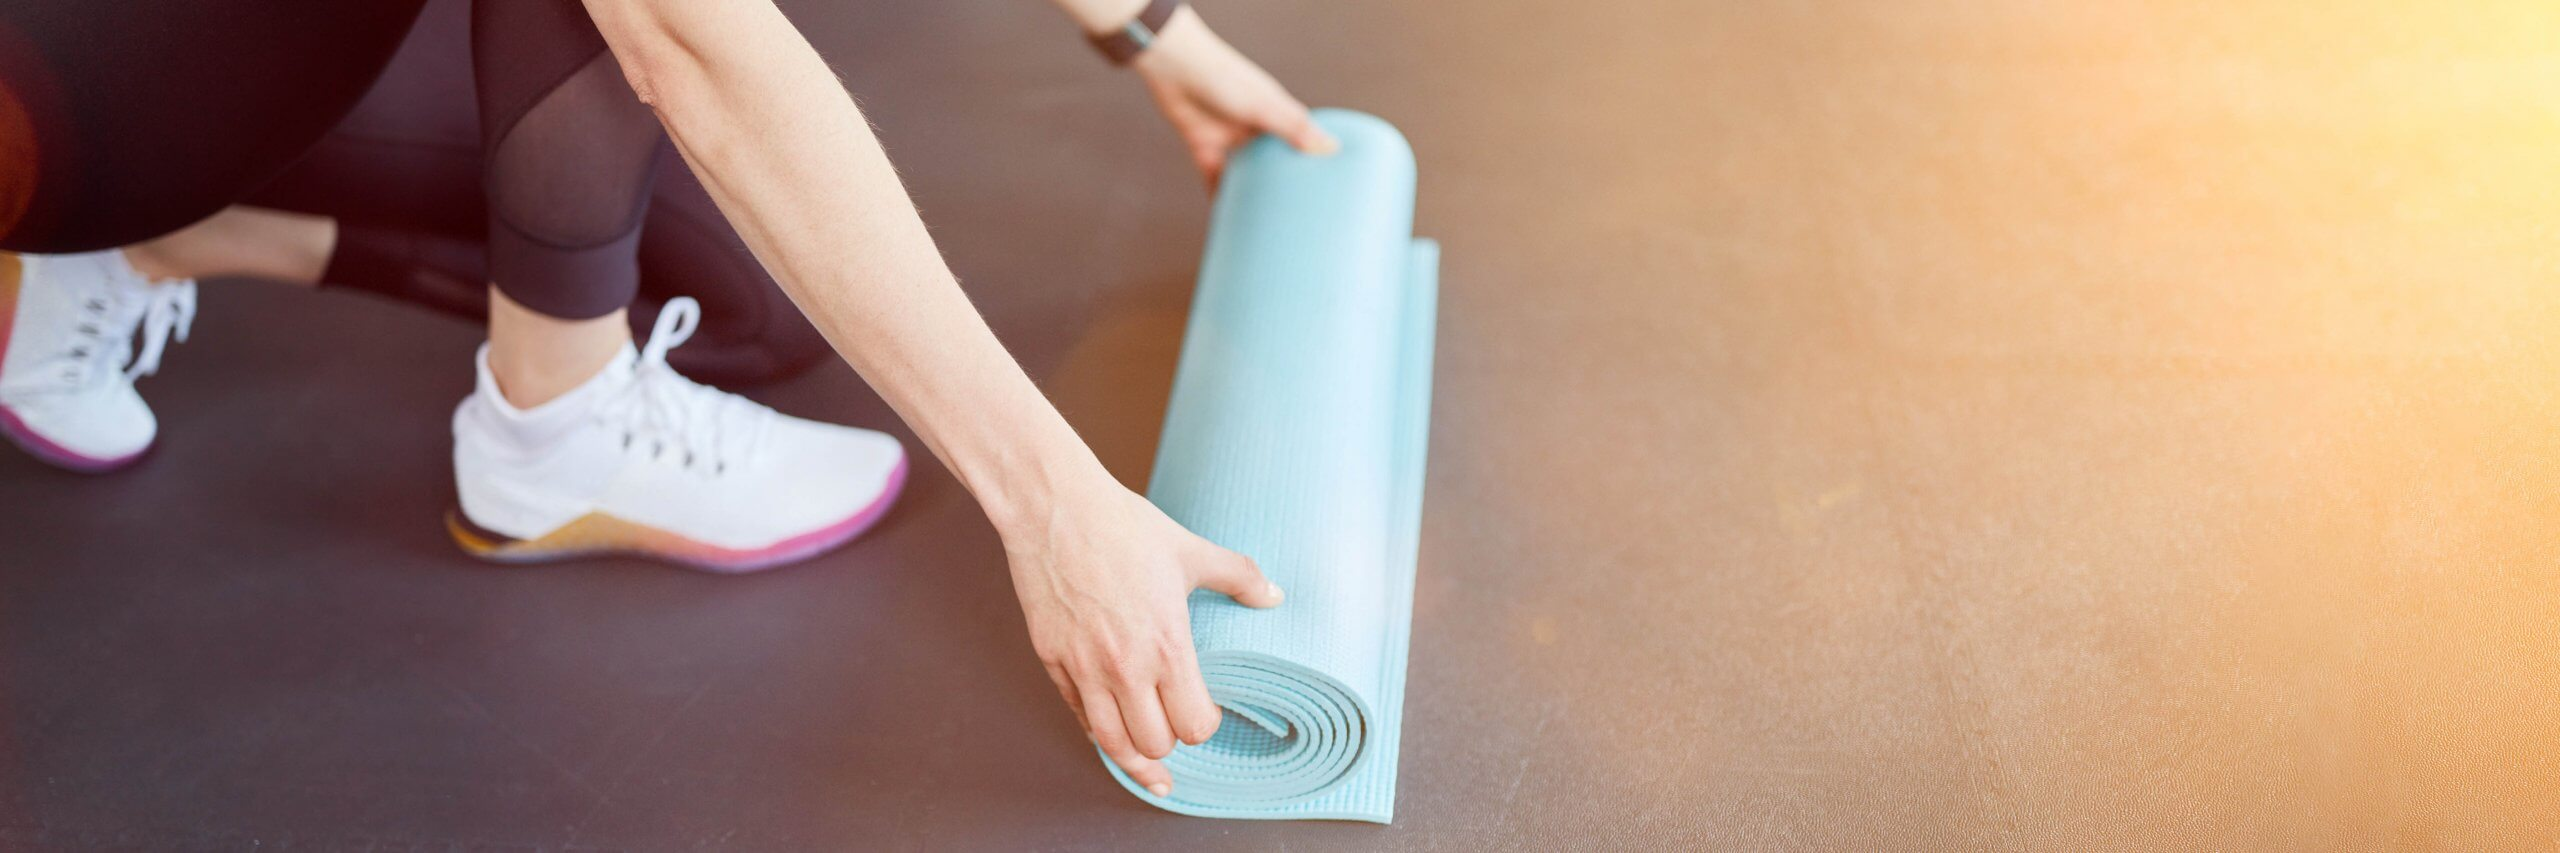 Girl Rolling Out a Yoga Mat